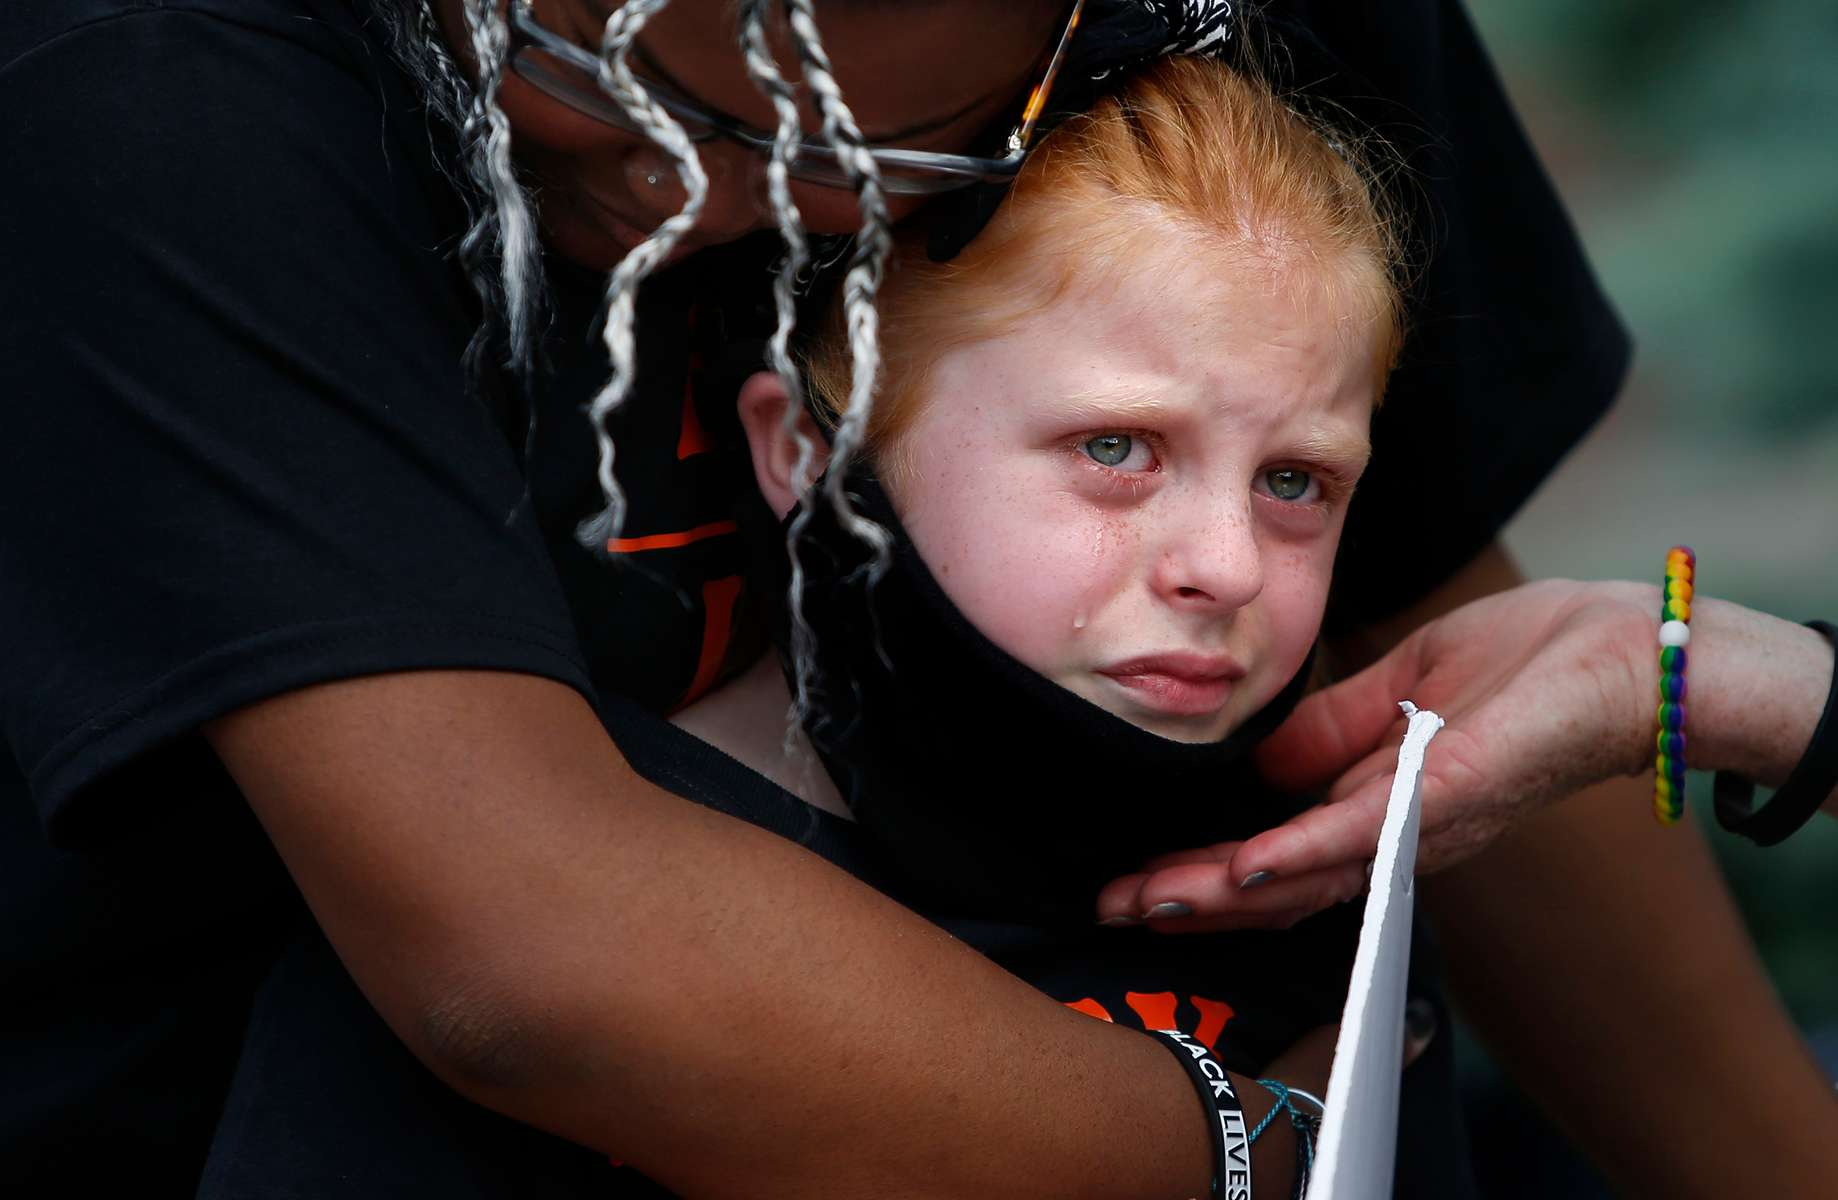 Woburn, MA - 6/4/20 - Valentina Manna, 8, (C) is comforted by her sister, Ty, 16, (L) after she took the microphone to speak to a crowd gathered at a peaceful Black Lives Matter vigil to honor the life of George Floyd and told the crowd, {quote}I don't care what color my sisters' skin is because I love them.{quote} Valentina broke down in tears and was embraced by her two sisters Brooklyn and Ty.